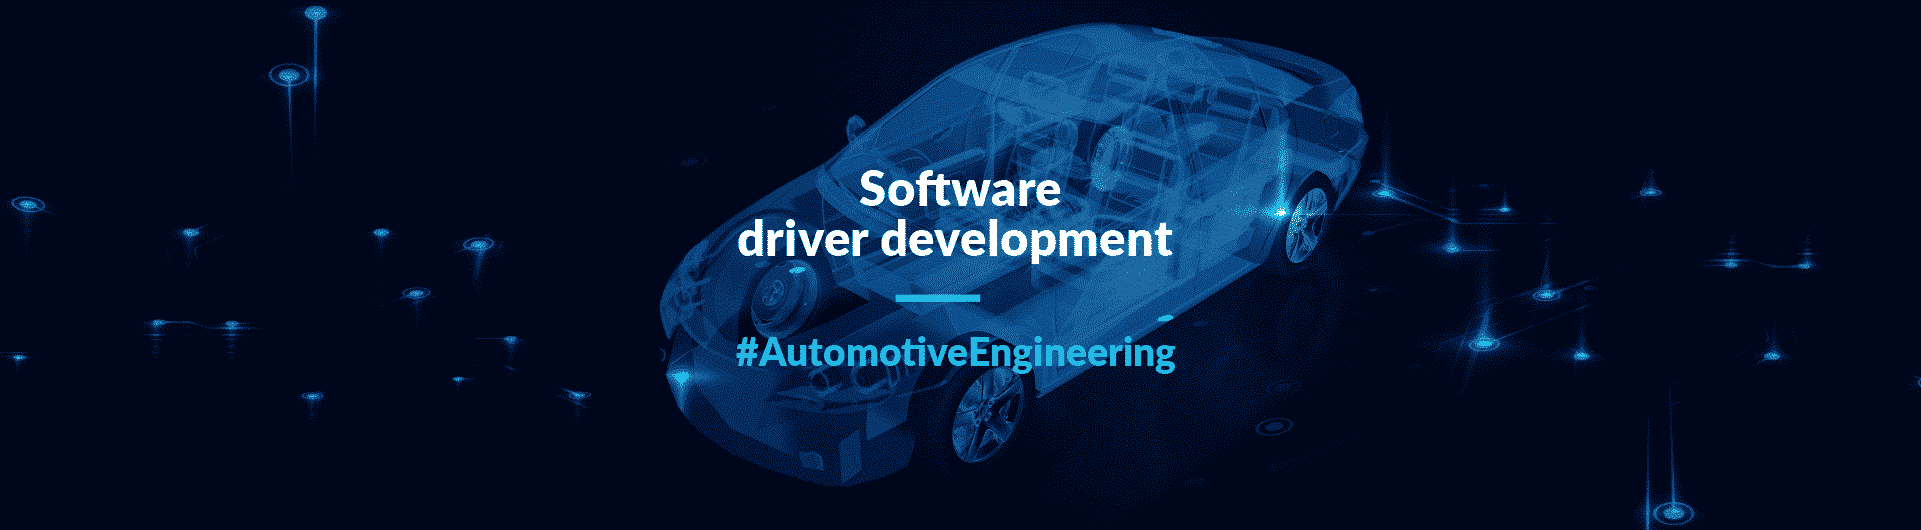 Automotive software driver development